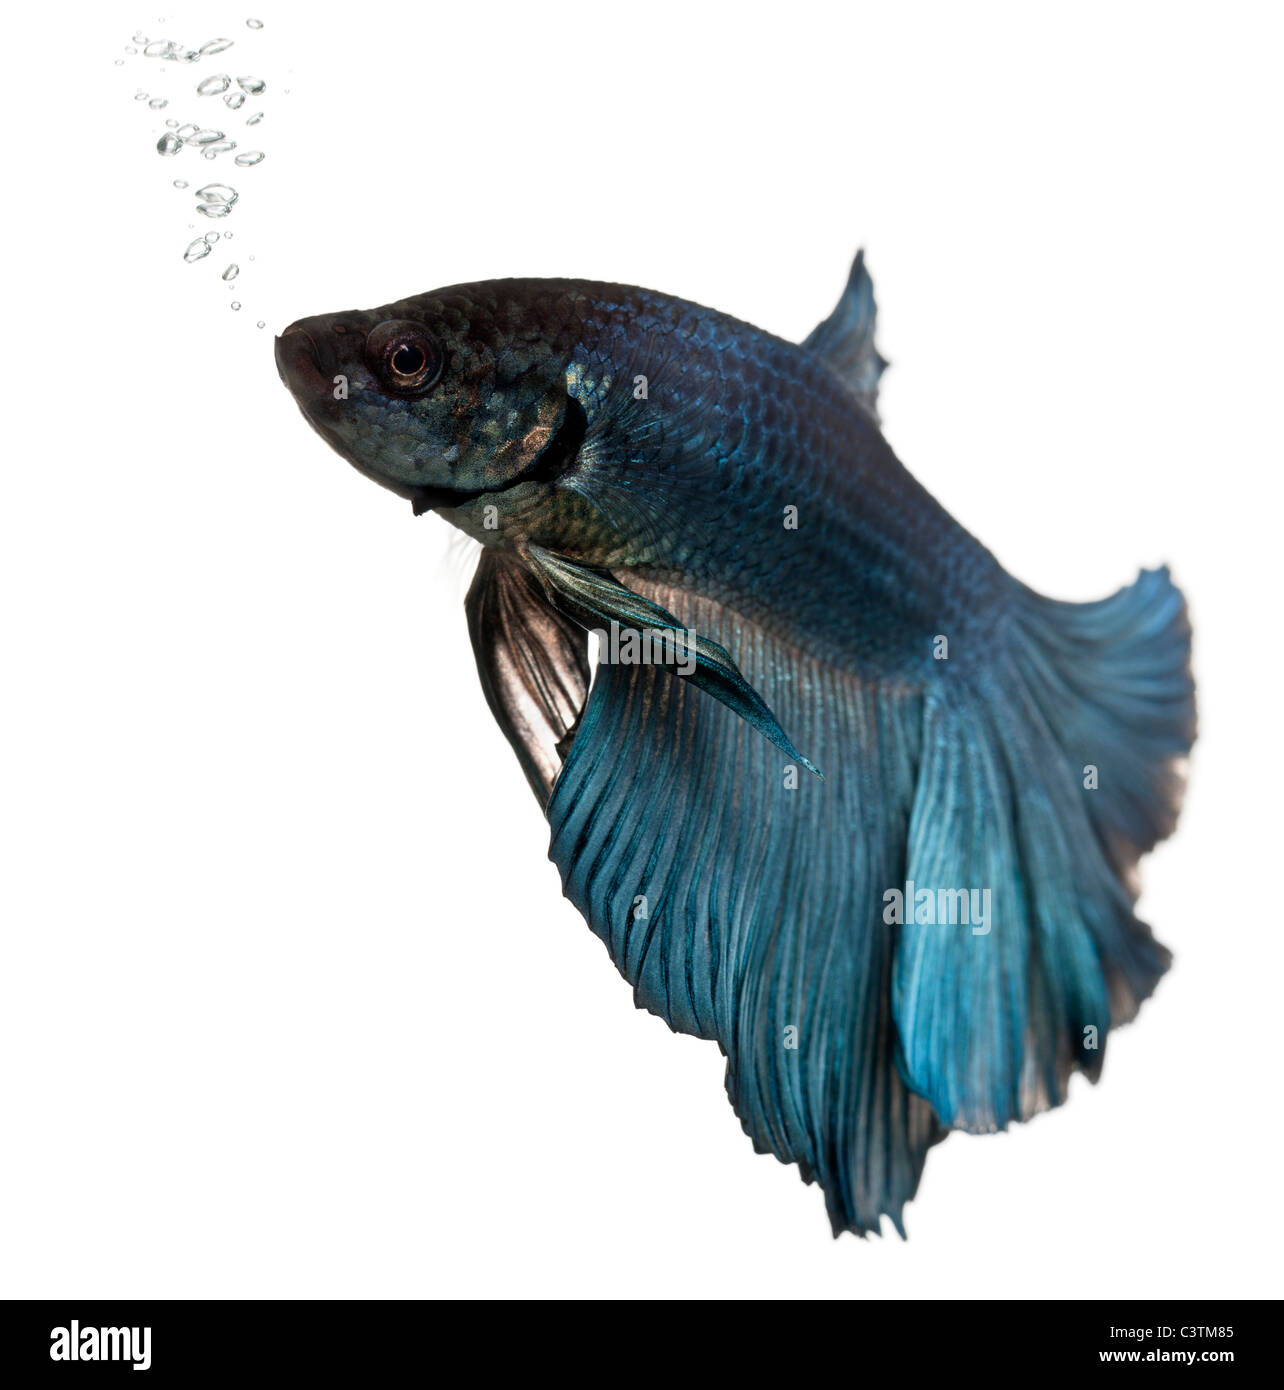 Blue Siamese fighting fish, Betta Splendens, swimming in front of white background - Stock Image